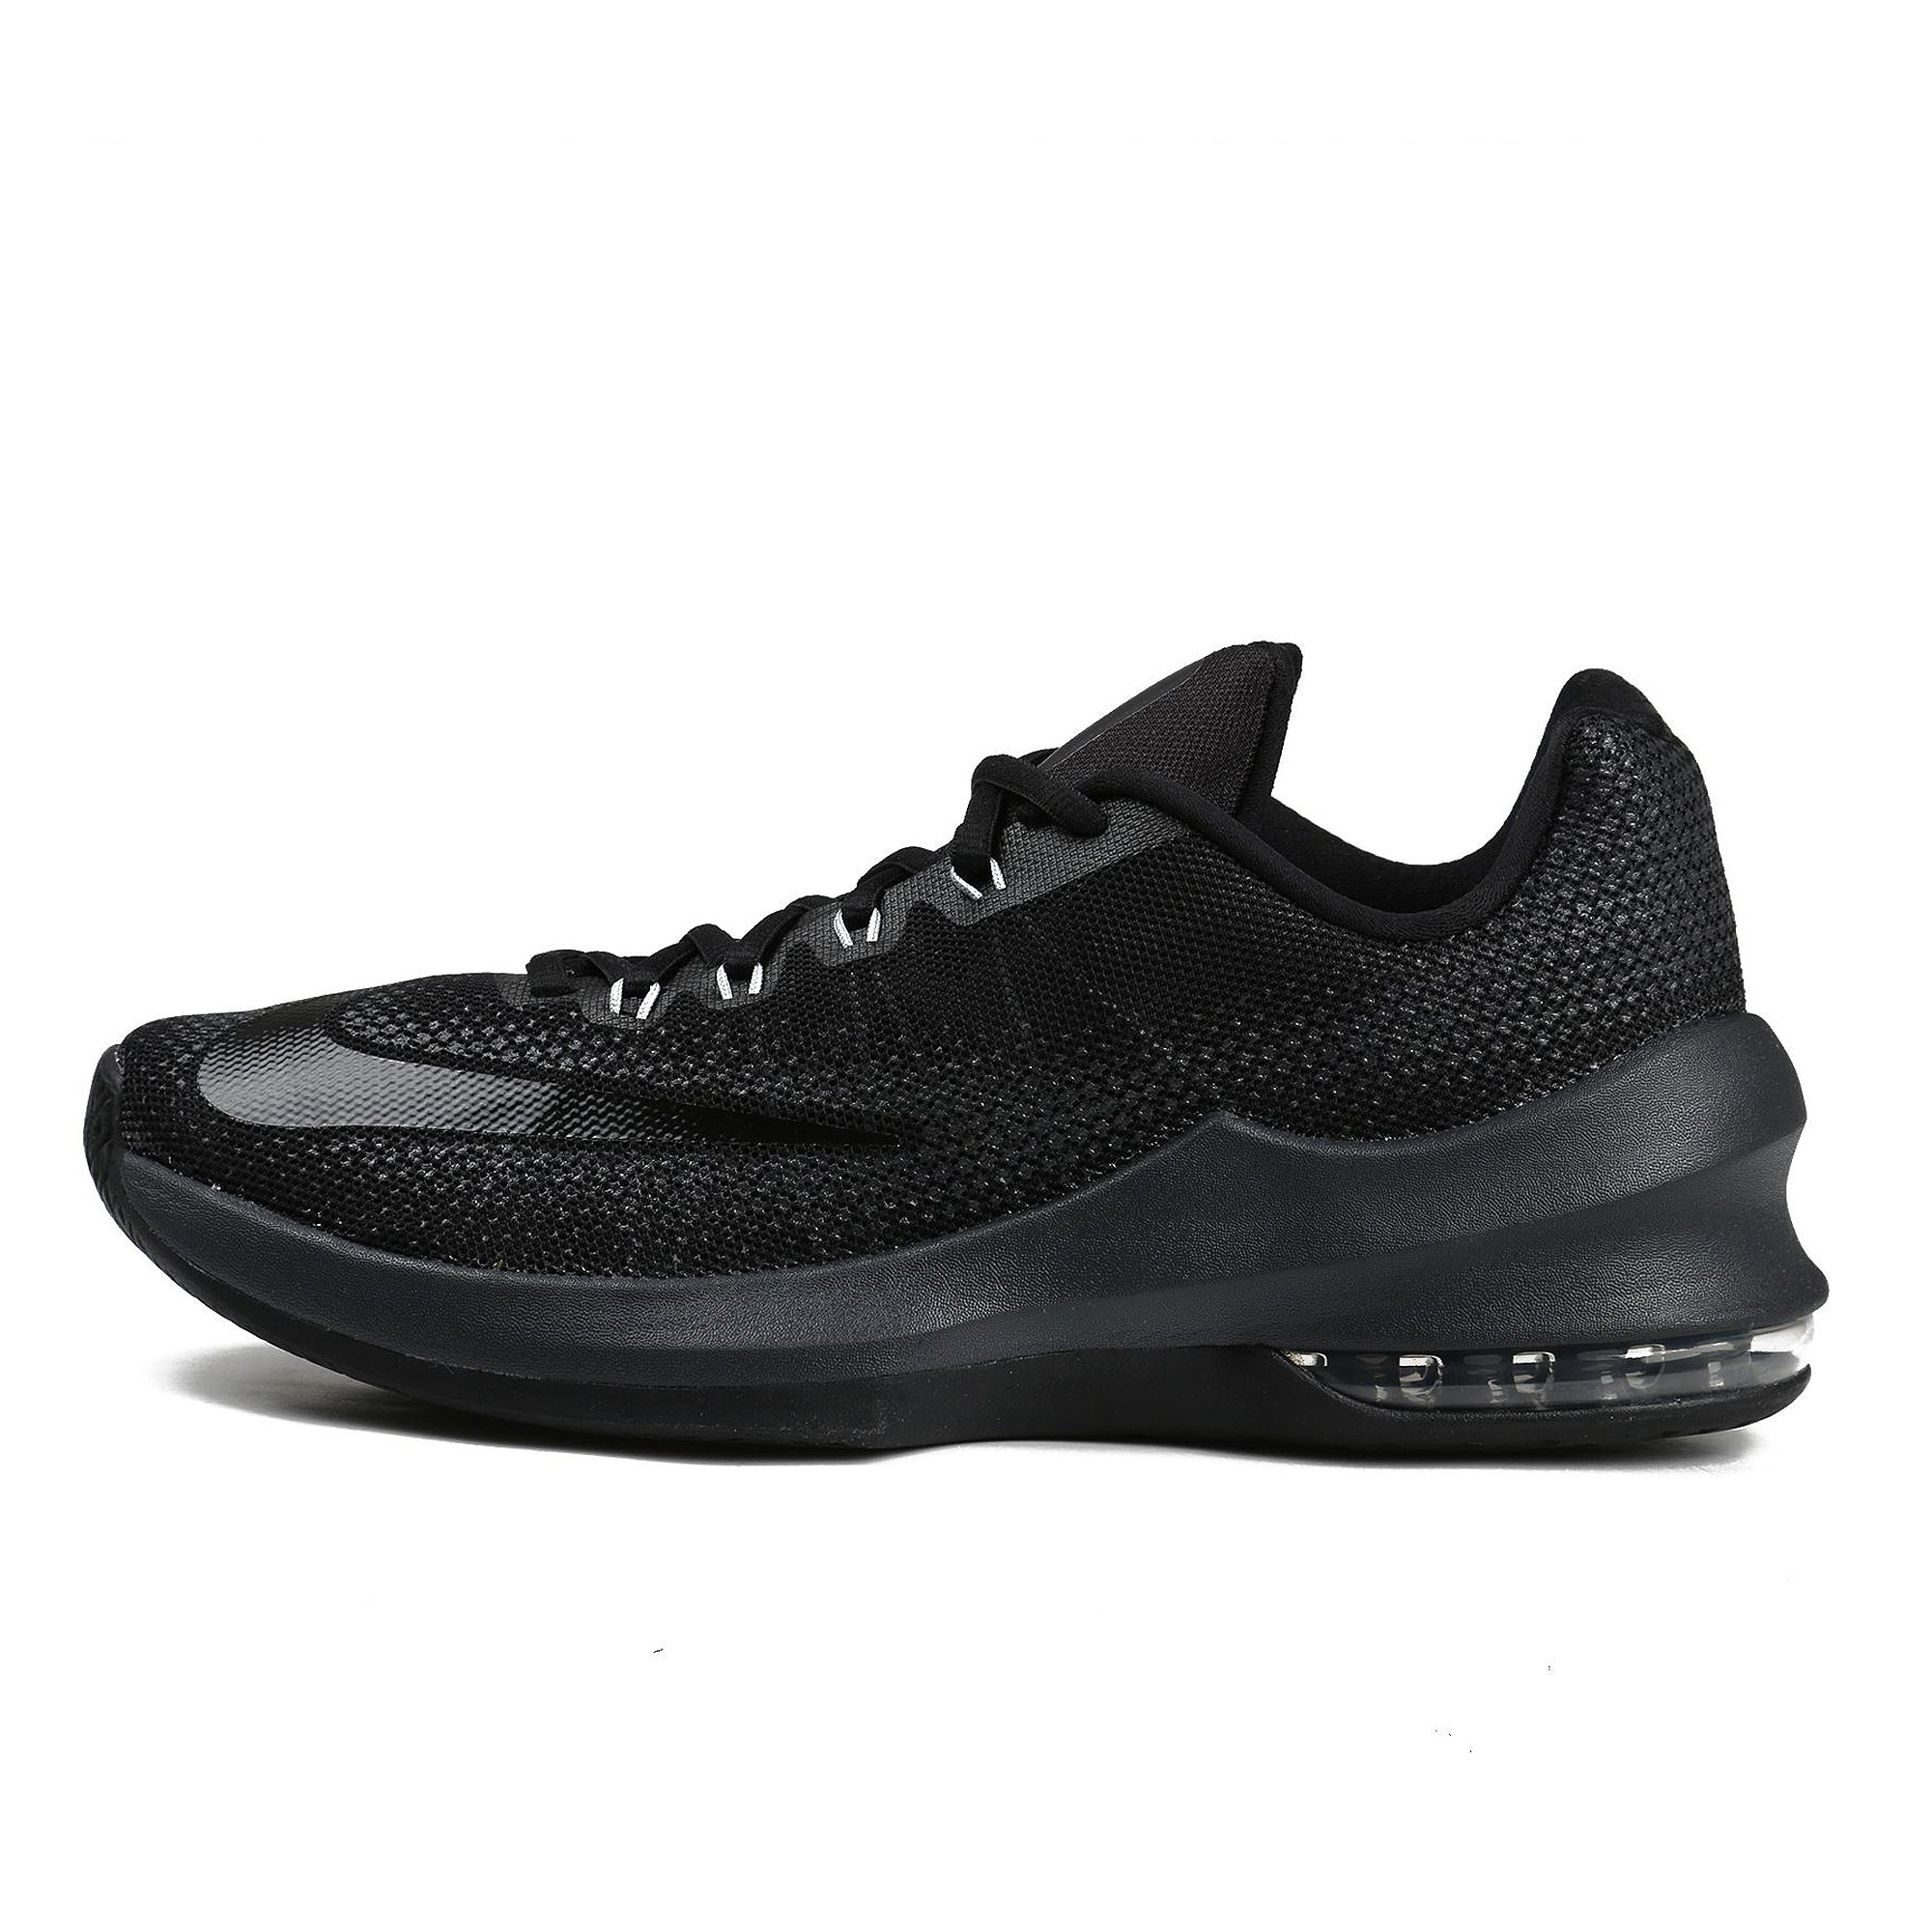 outlet store sale 9efe0 81450 Galleon - NIKE Men s Air Max Infuriate Low Basketball Shoe Black Anthracite Dark  Grey Size 15 M US